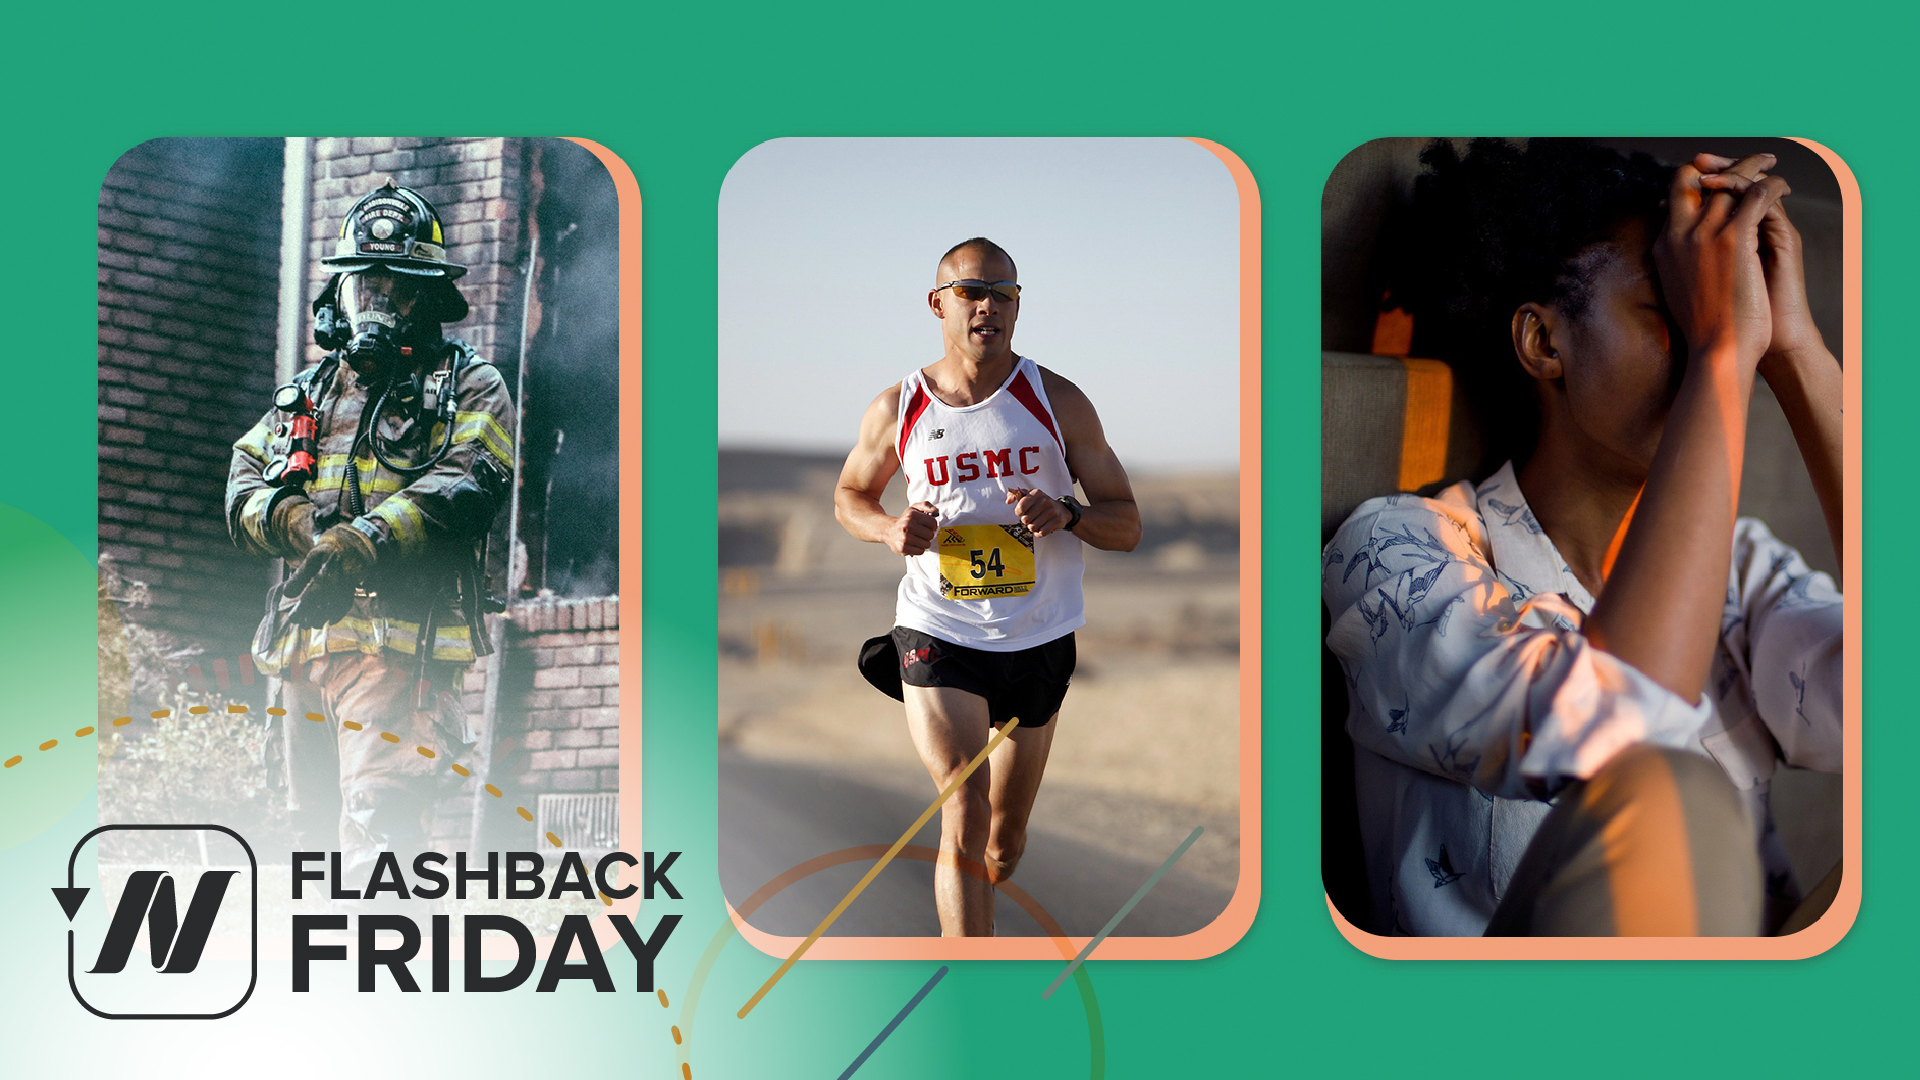 Flashback Friday: Best Food to Counter Stress Induced Immune Suppression